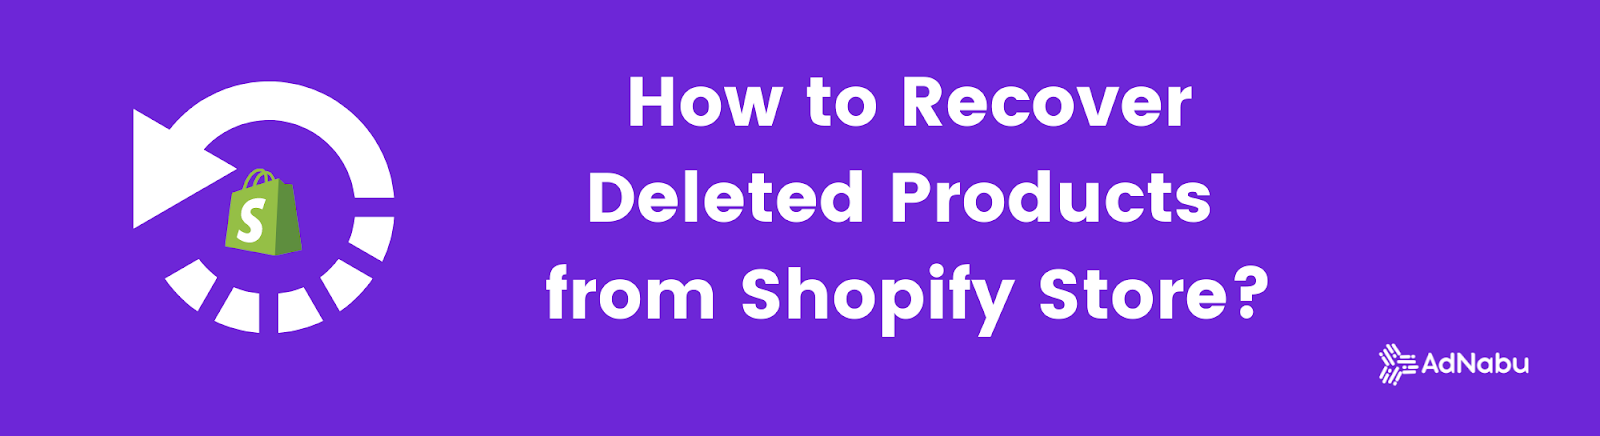 How to Recover Deleted Products from the Shopify Store